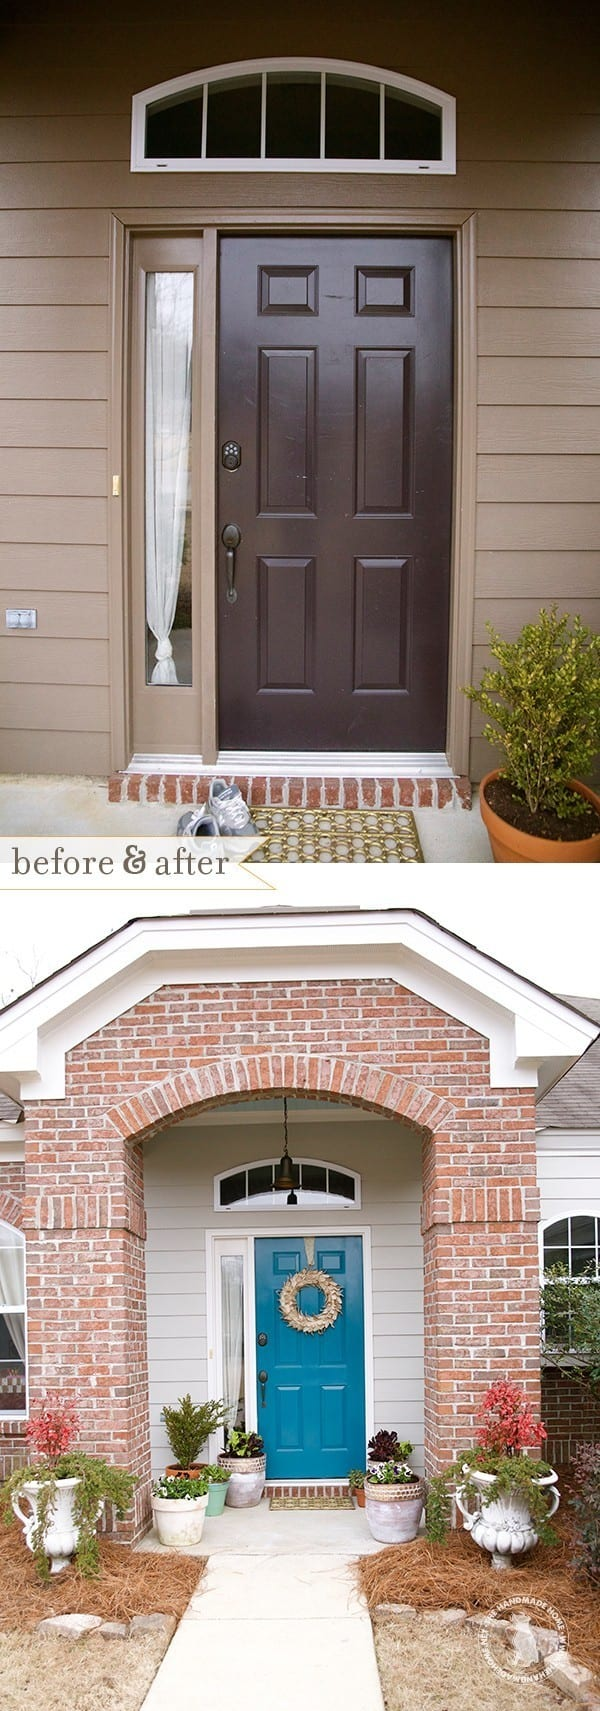 front_door_before_and_after